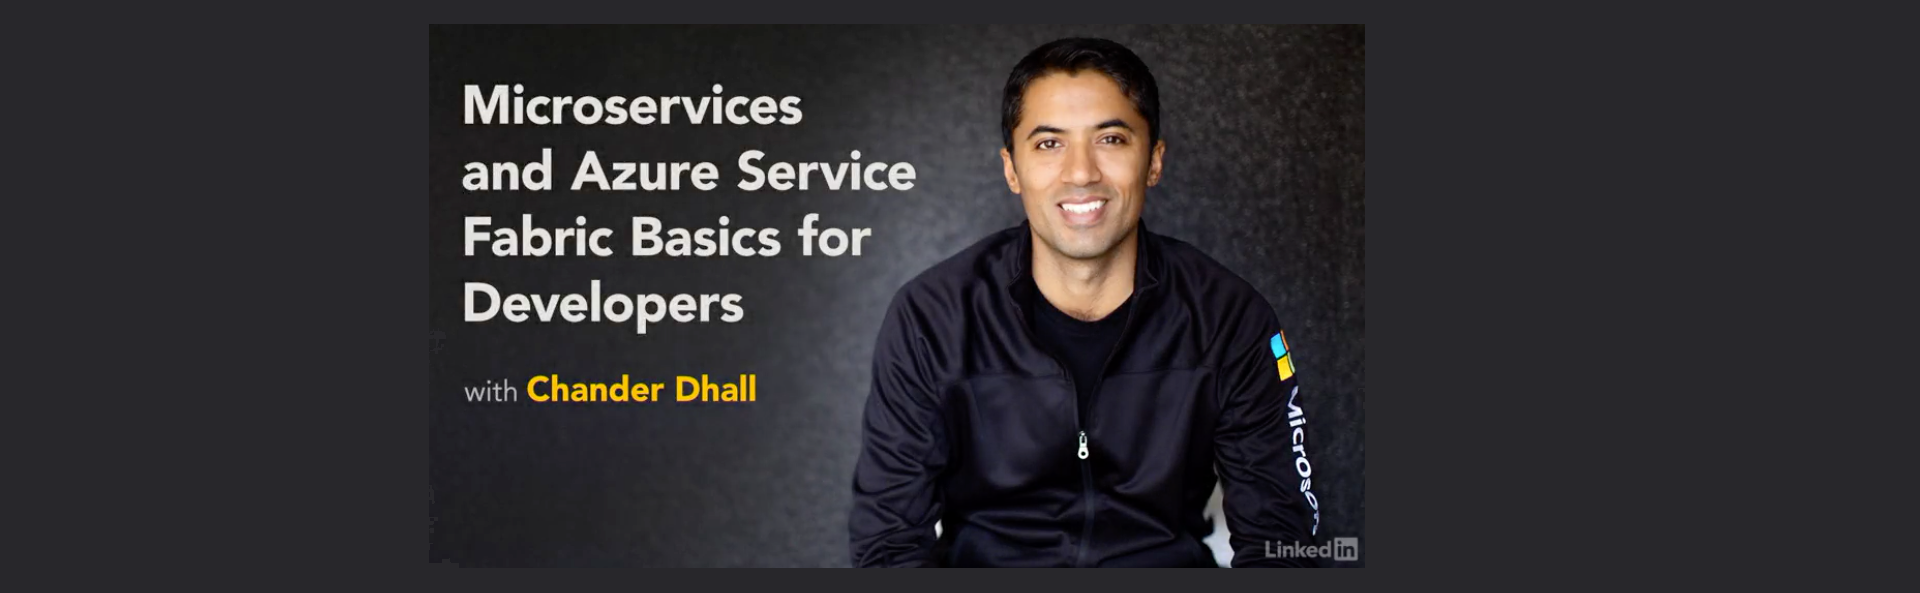 Microservices and Azure Service Fabric Basics for Developers - By Chander Dhall